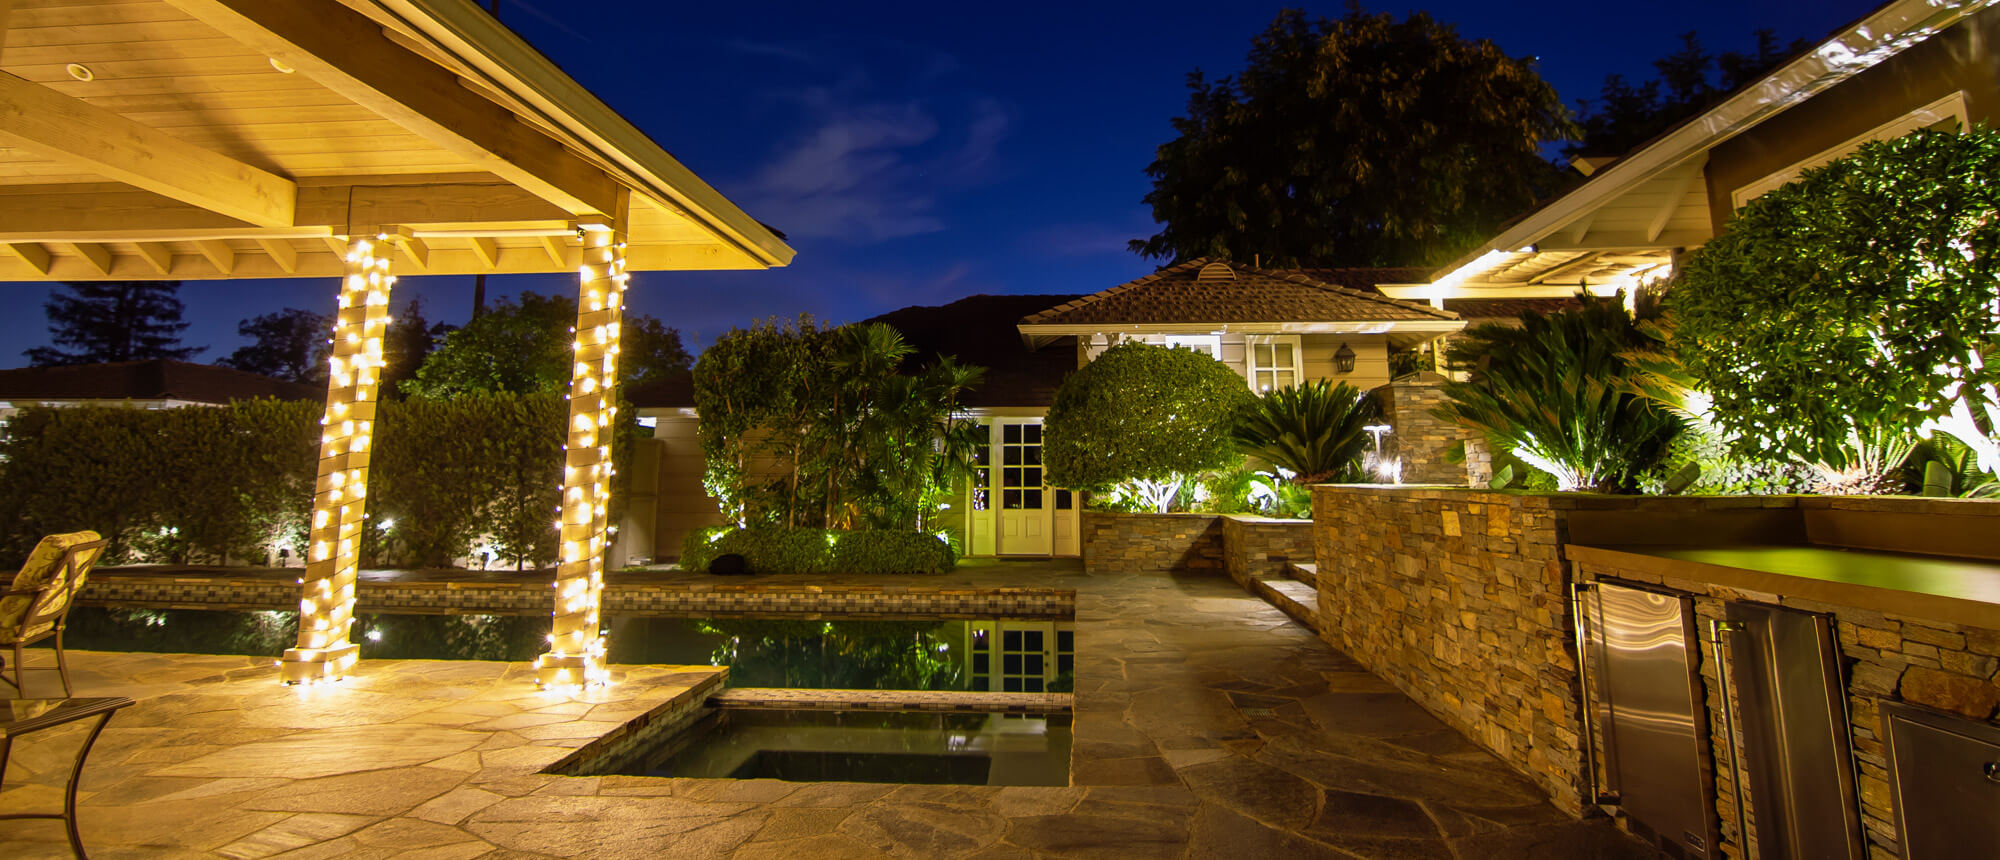 Why Use Low Voltage Landscape Lighting